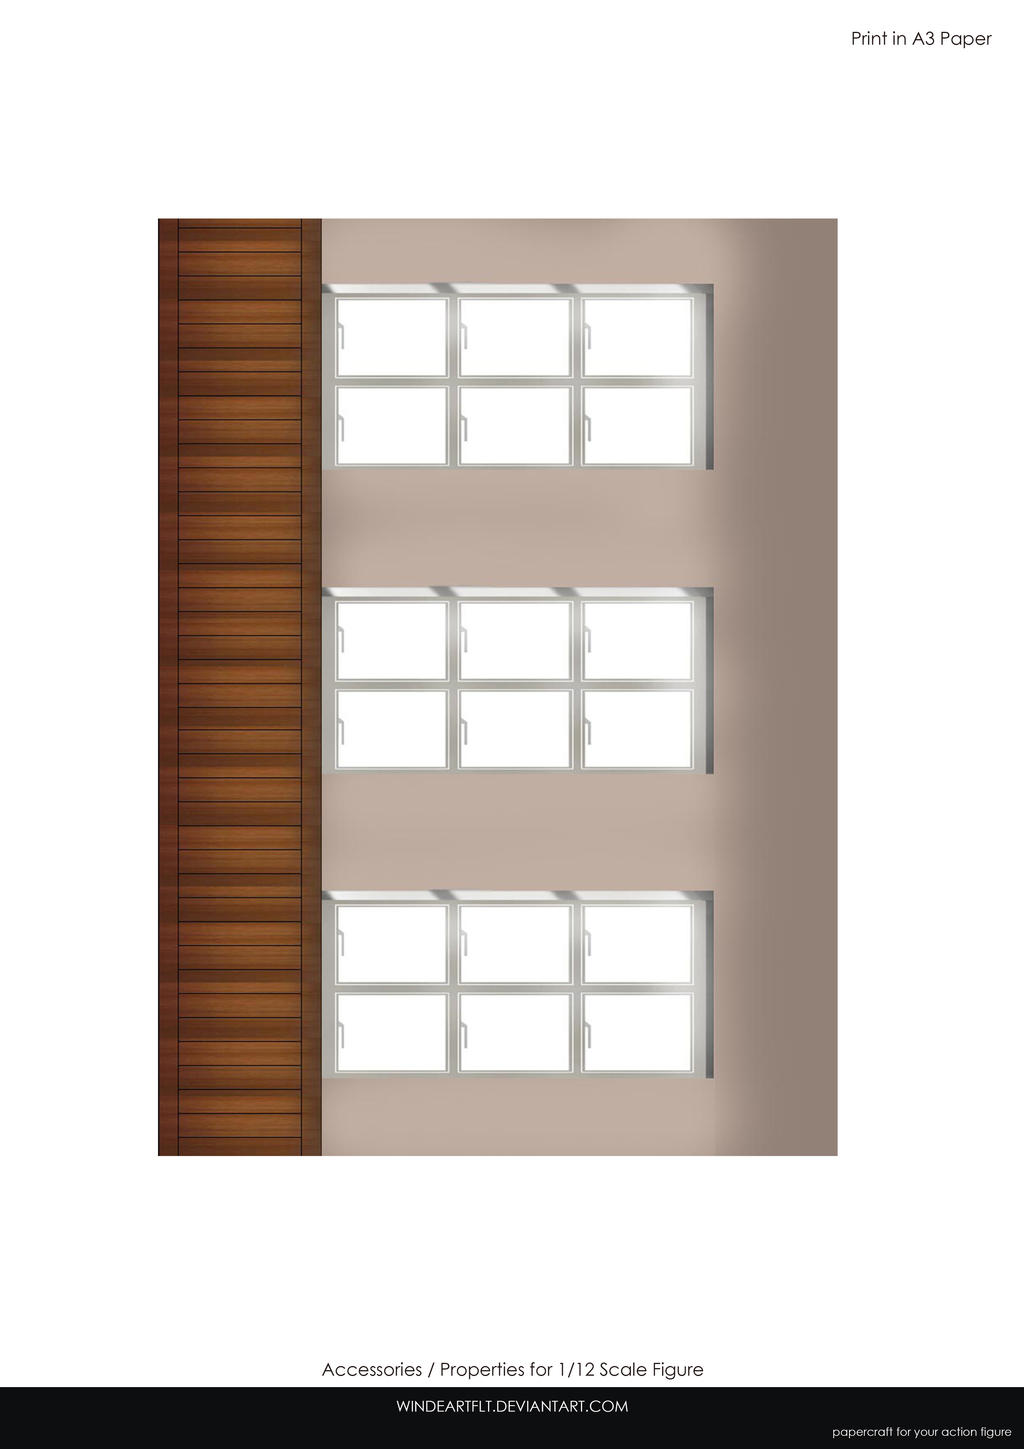 Wall Classroom for 1/12 scale figure